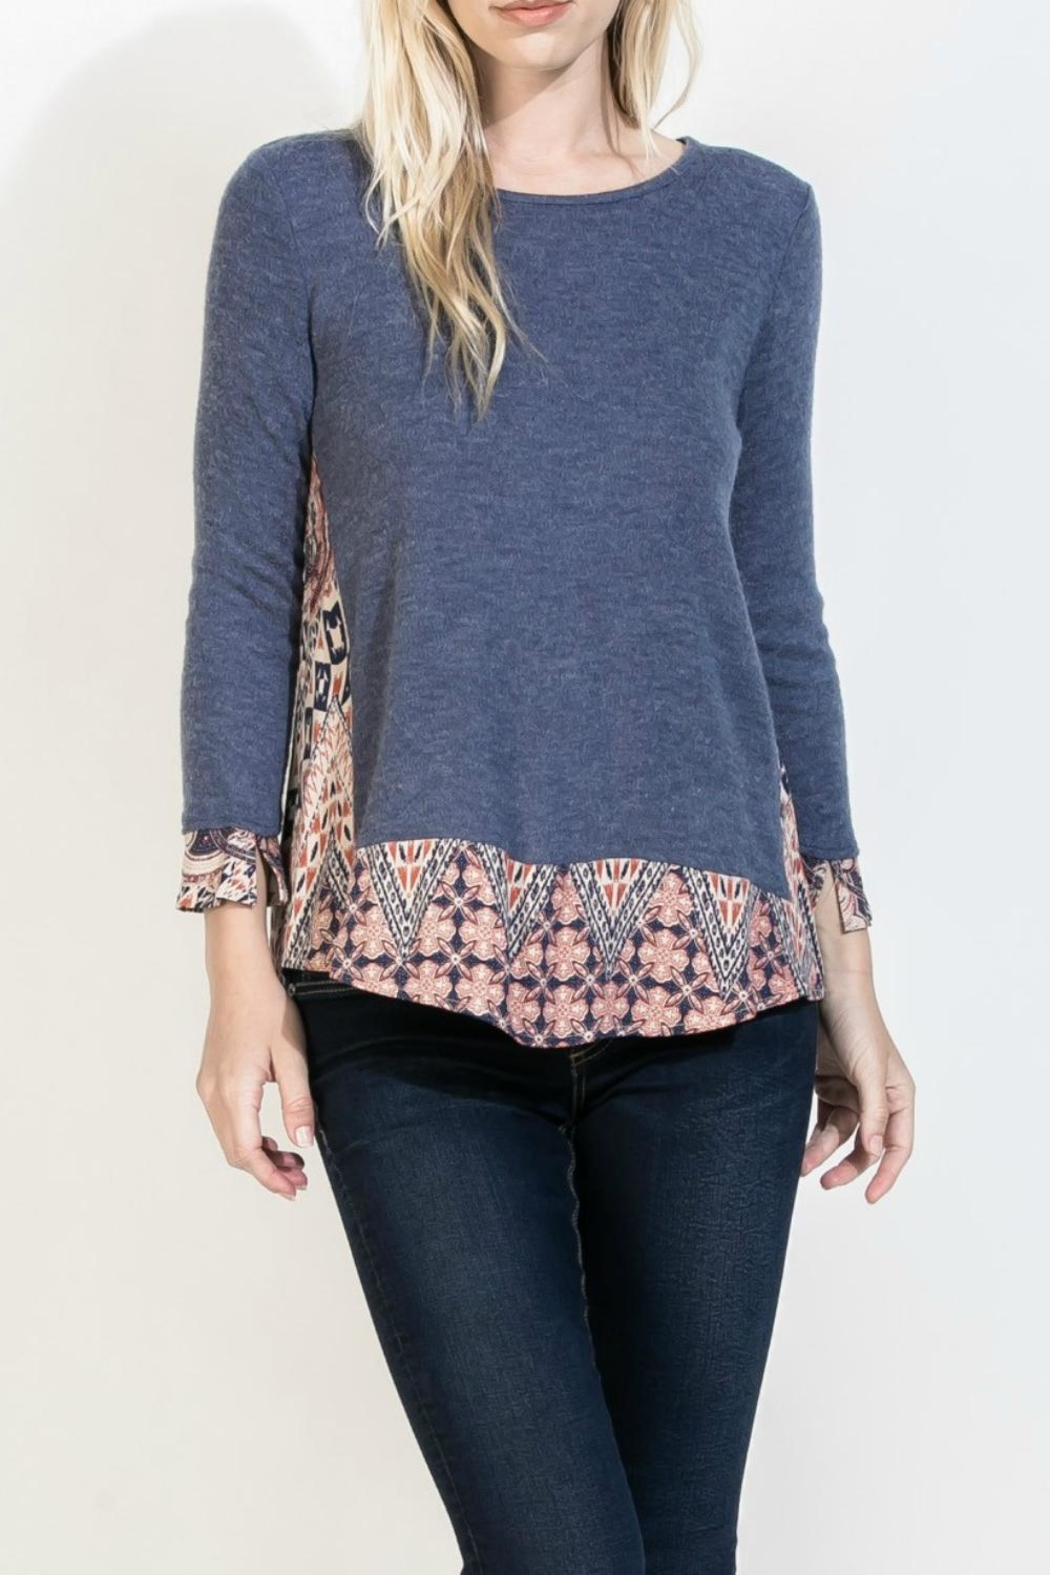 THML Clothing Blue Mosaic Top - Main Image